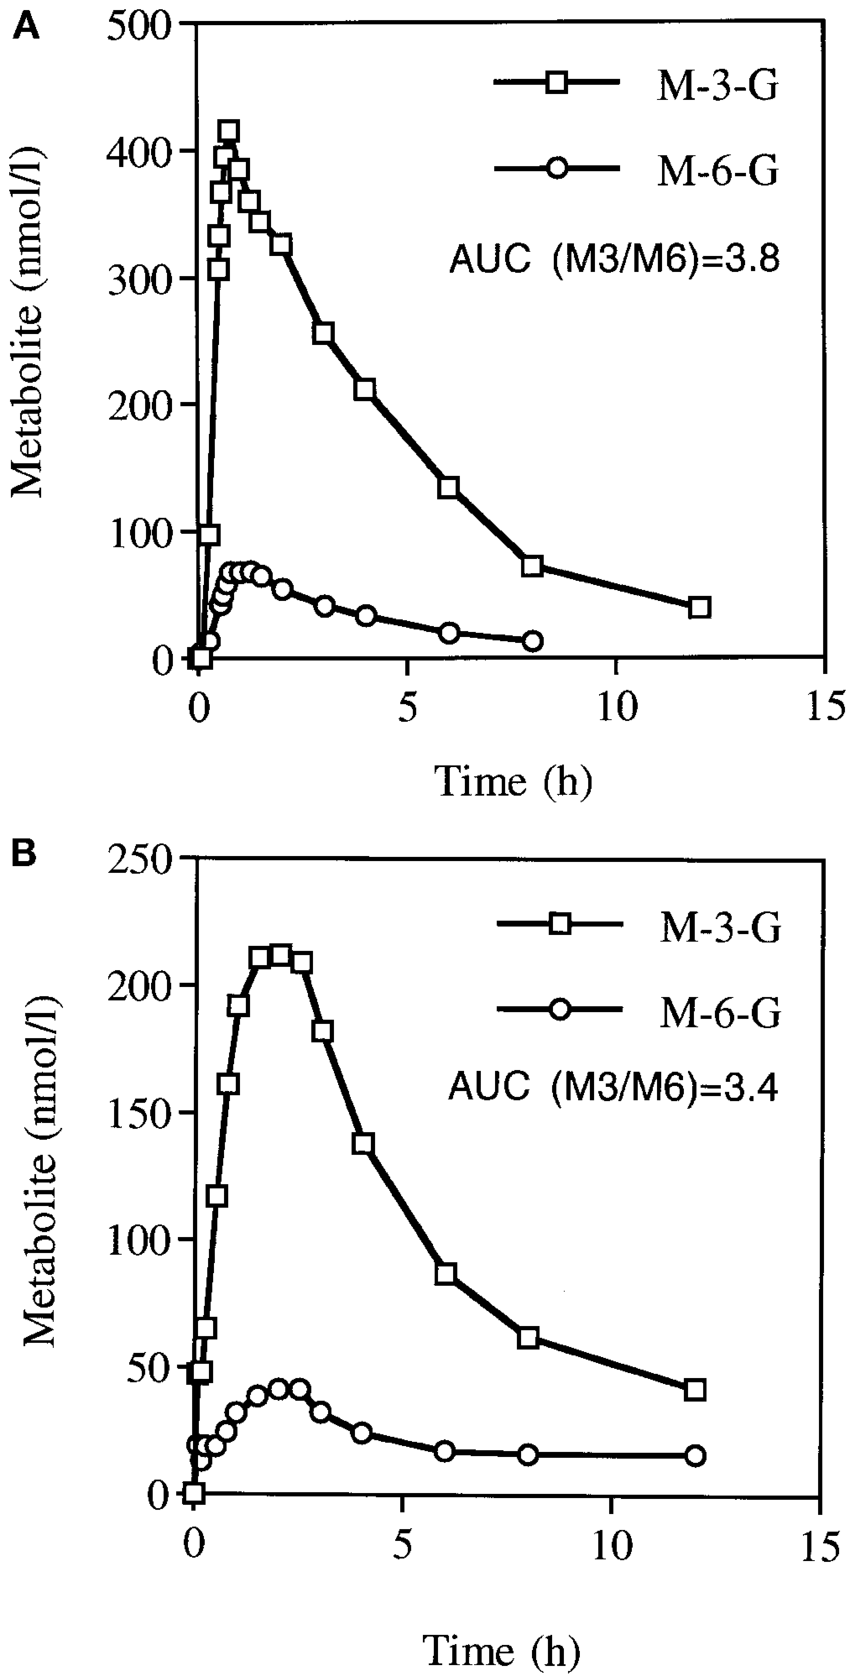 Plasma concentration of morphine metabolites M-3-G and M-6